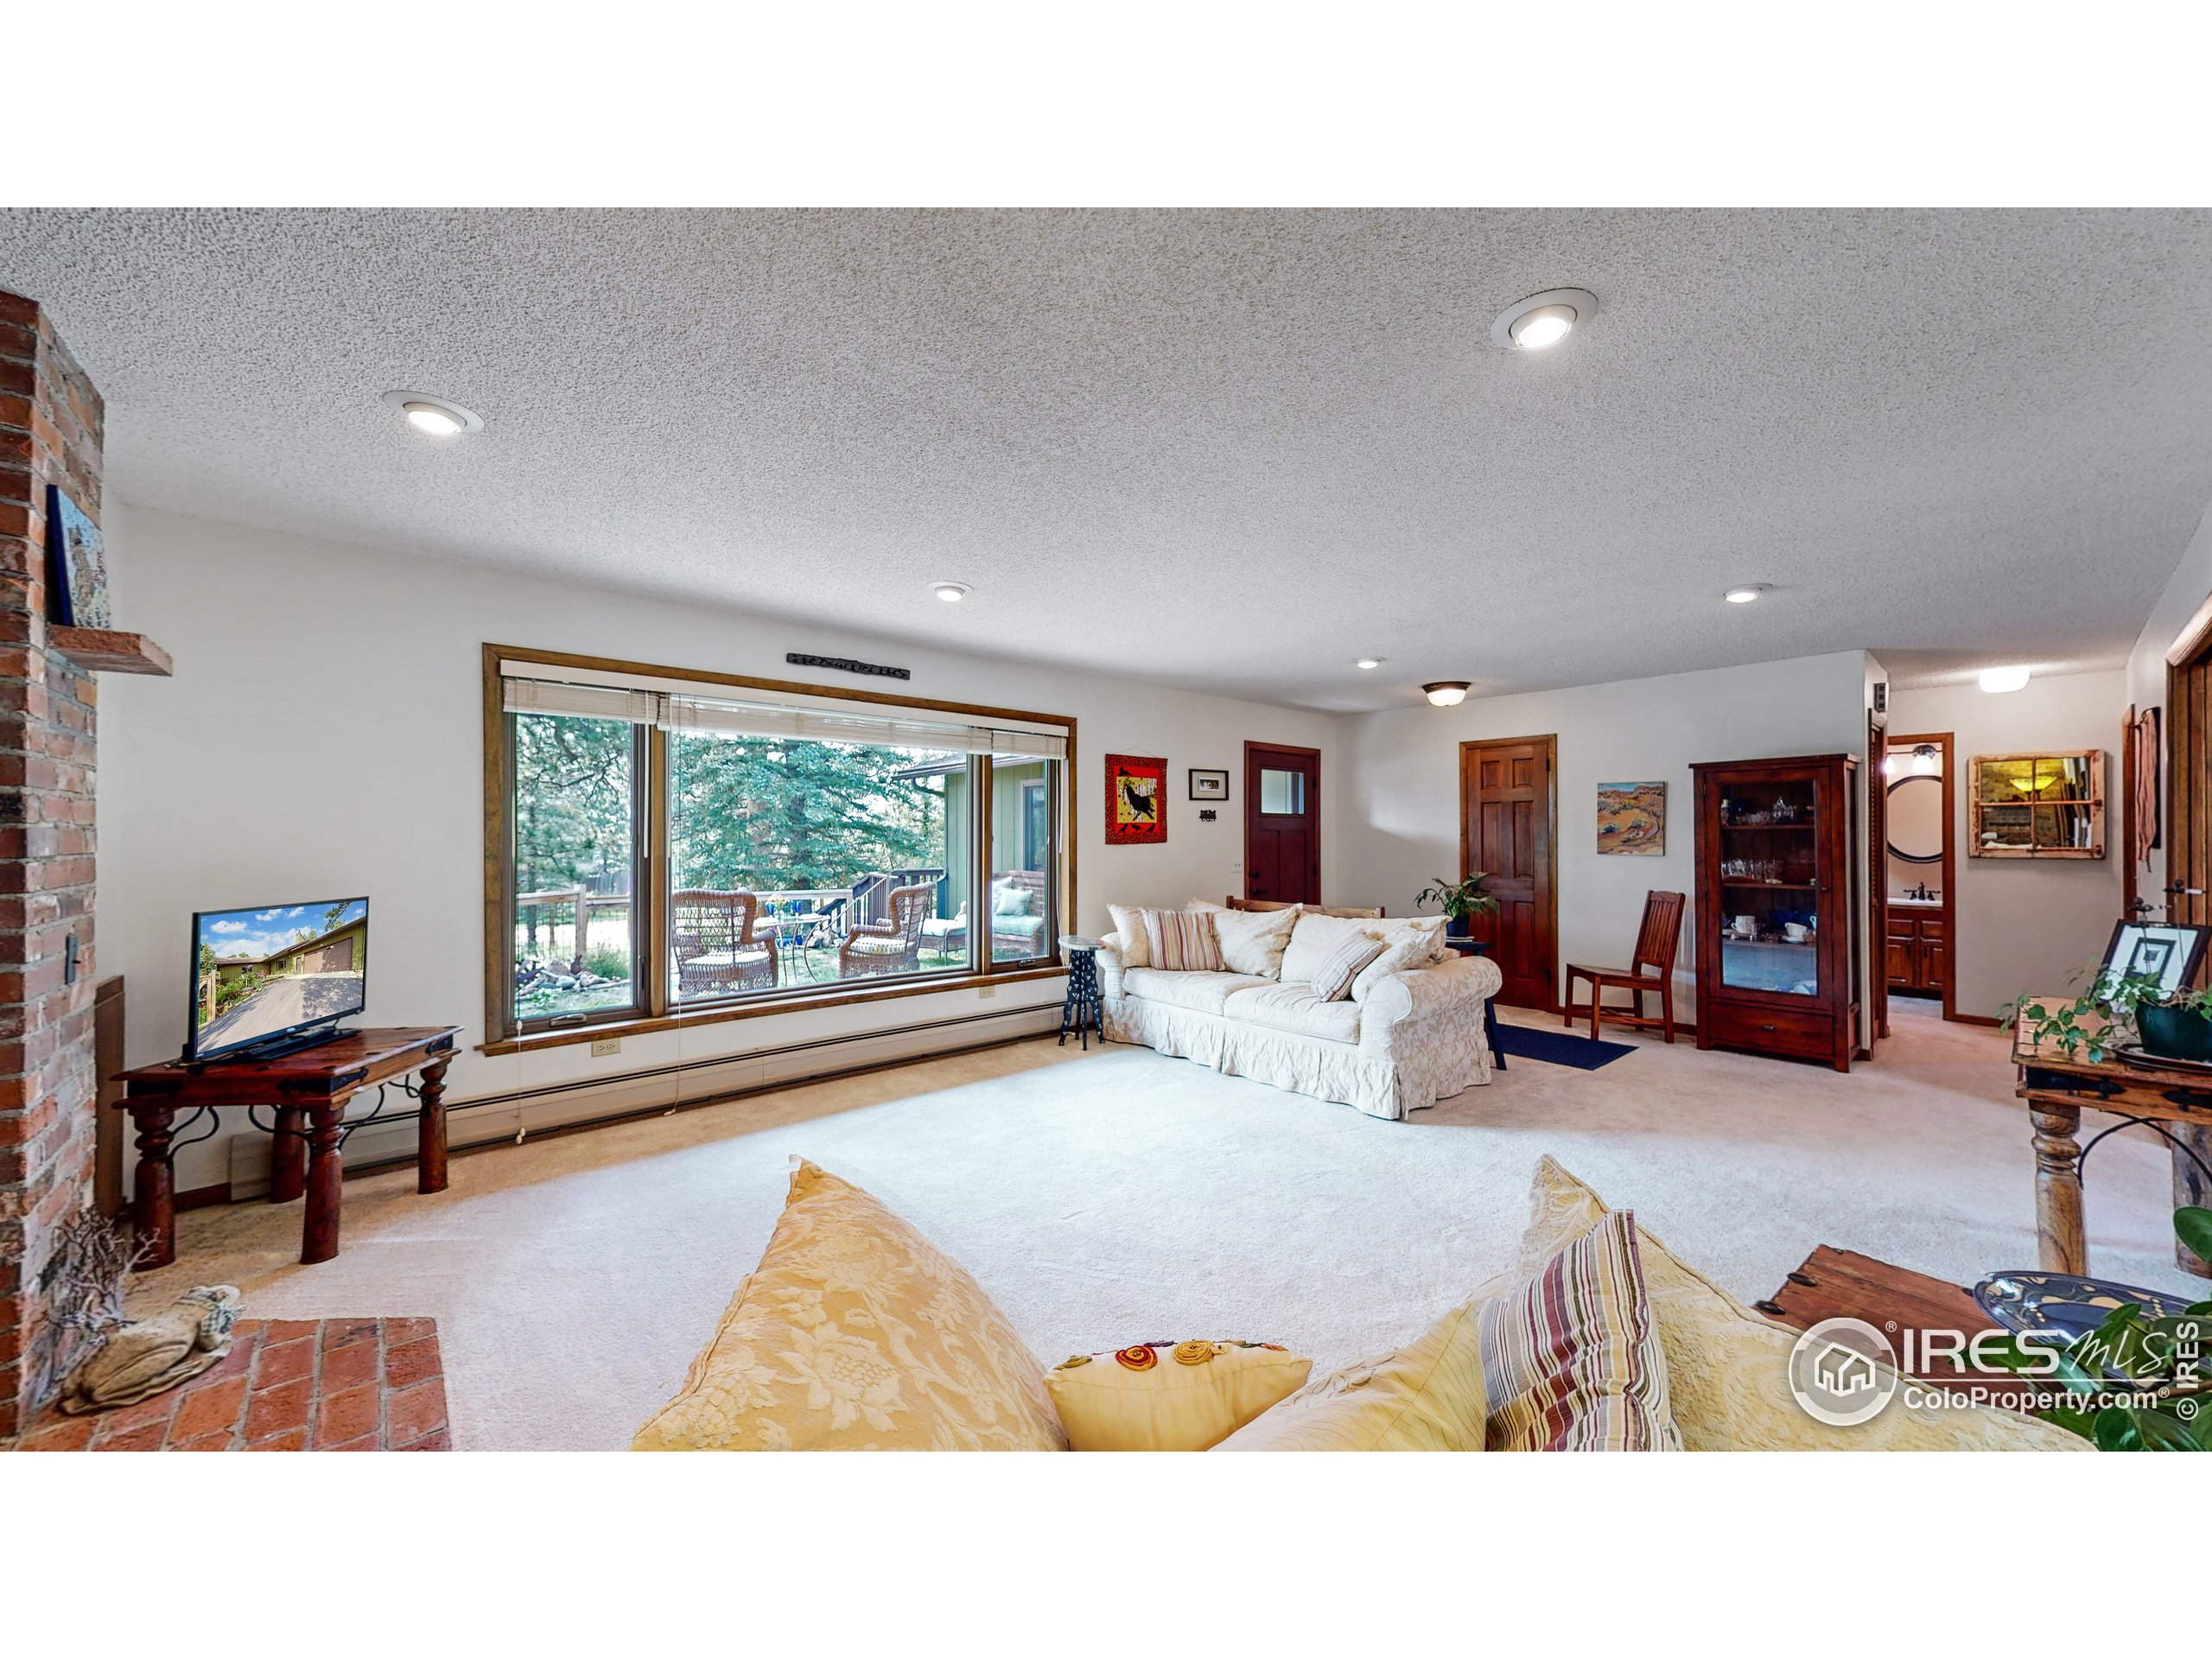 Granite counters, pantry, gas stove - what else could you want?